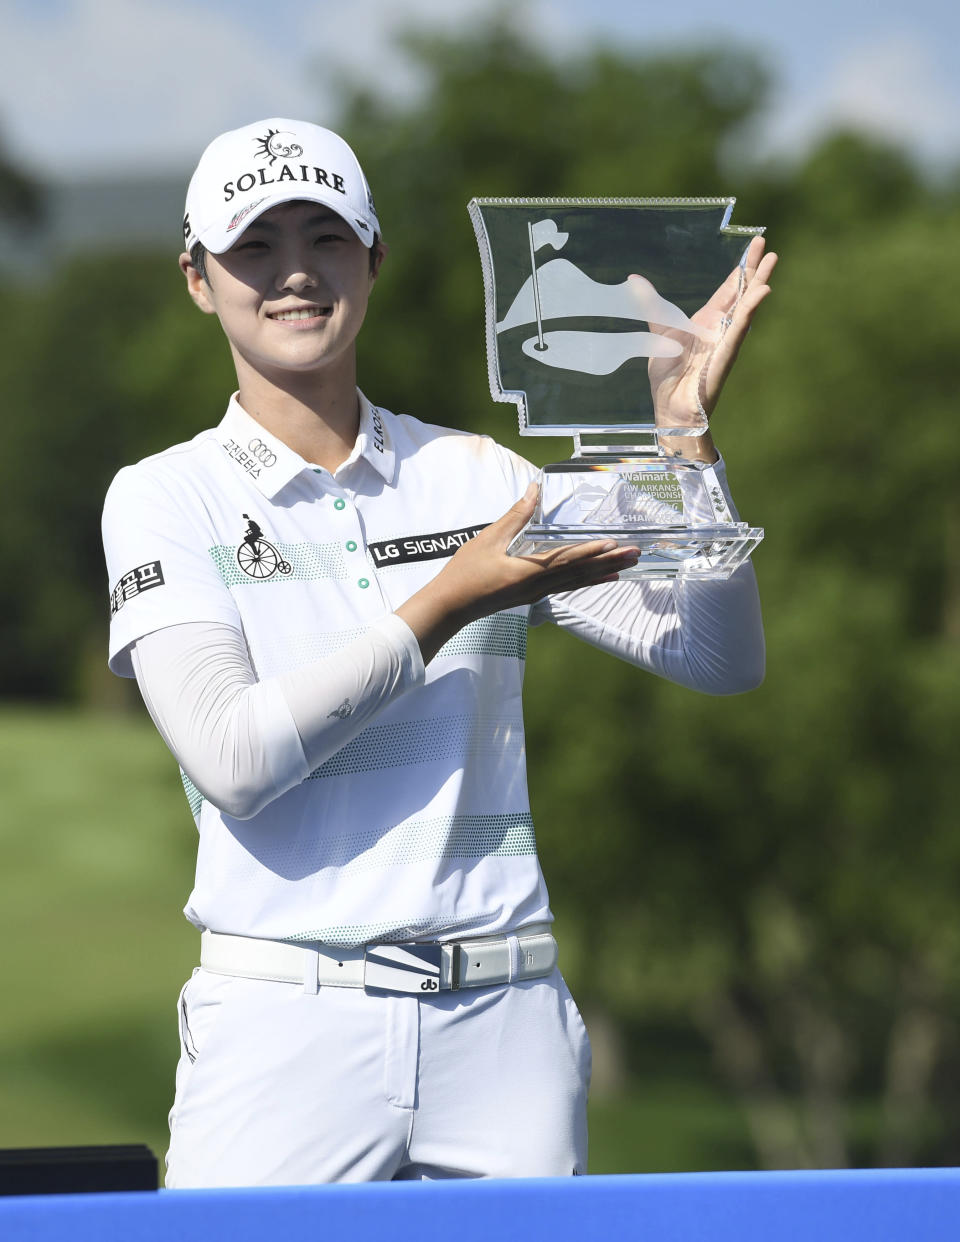 Sung Hyun Park holds up the trophy after winning the LPGA Walmart NW Arkansas Championship golf tournament, Sunday, June 30, 2019, in Rogers, Ark. (AP Photo/Michael Woods)